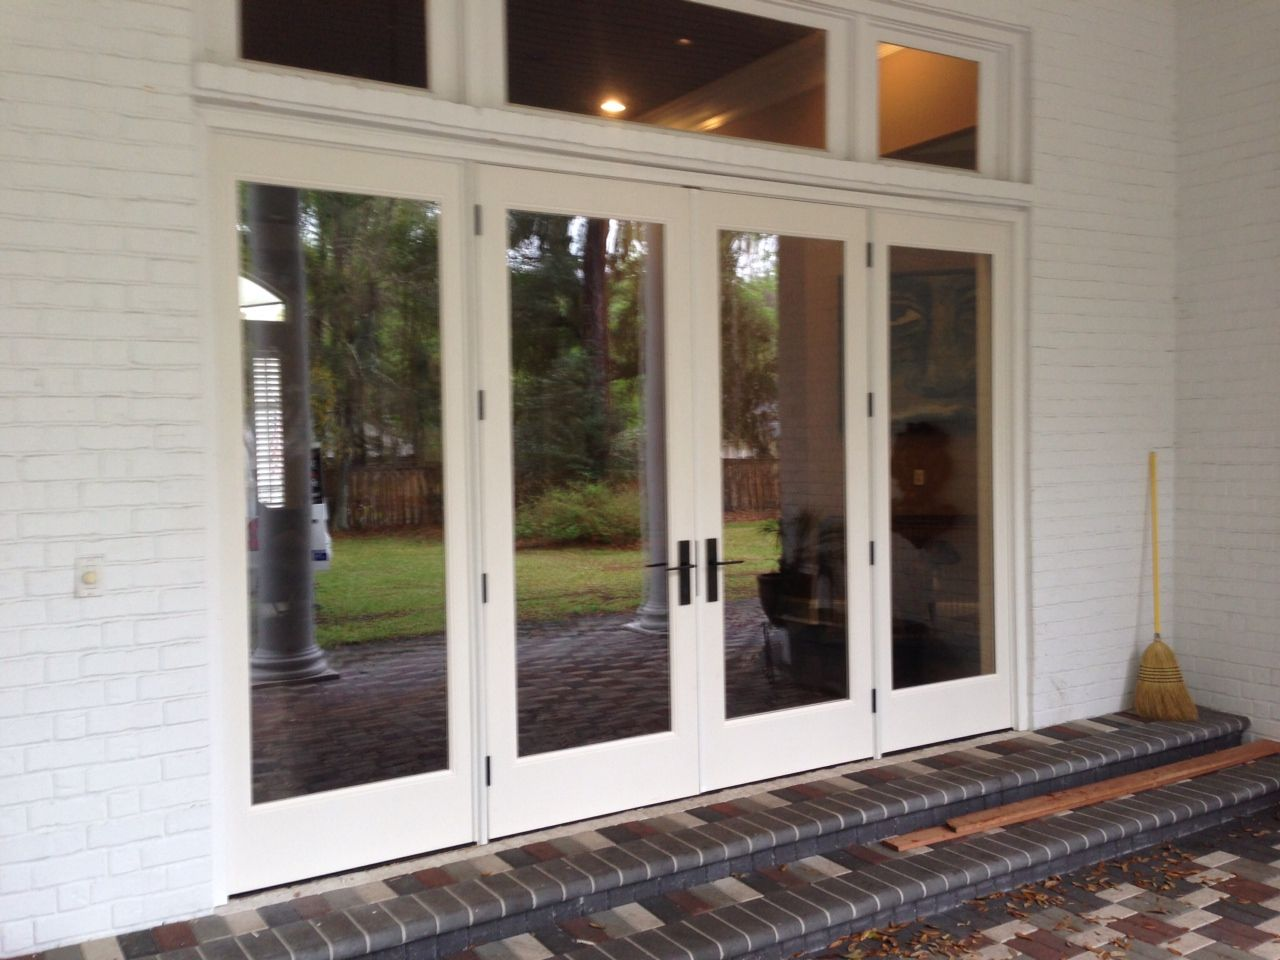 French Doors Gainesville Jacksonville Ocala The Villages Lake City Fl French Doors Patio Sliding French Doors Patio Exterior Doors With Glass